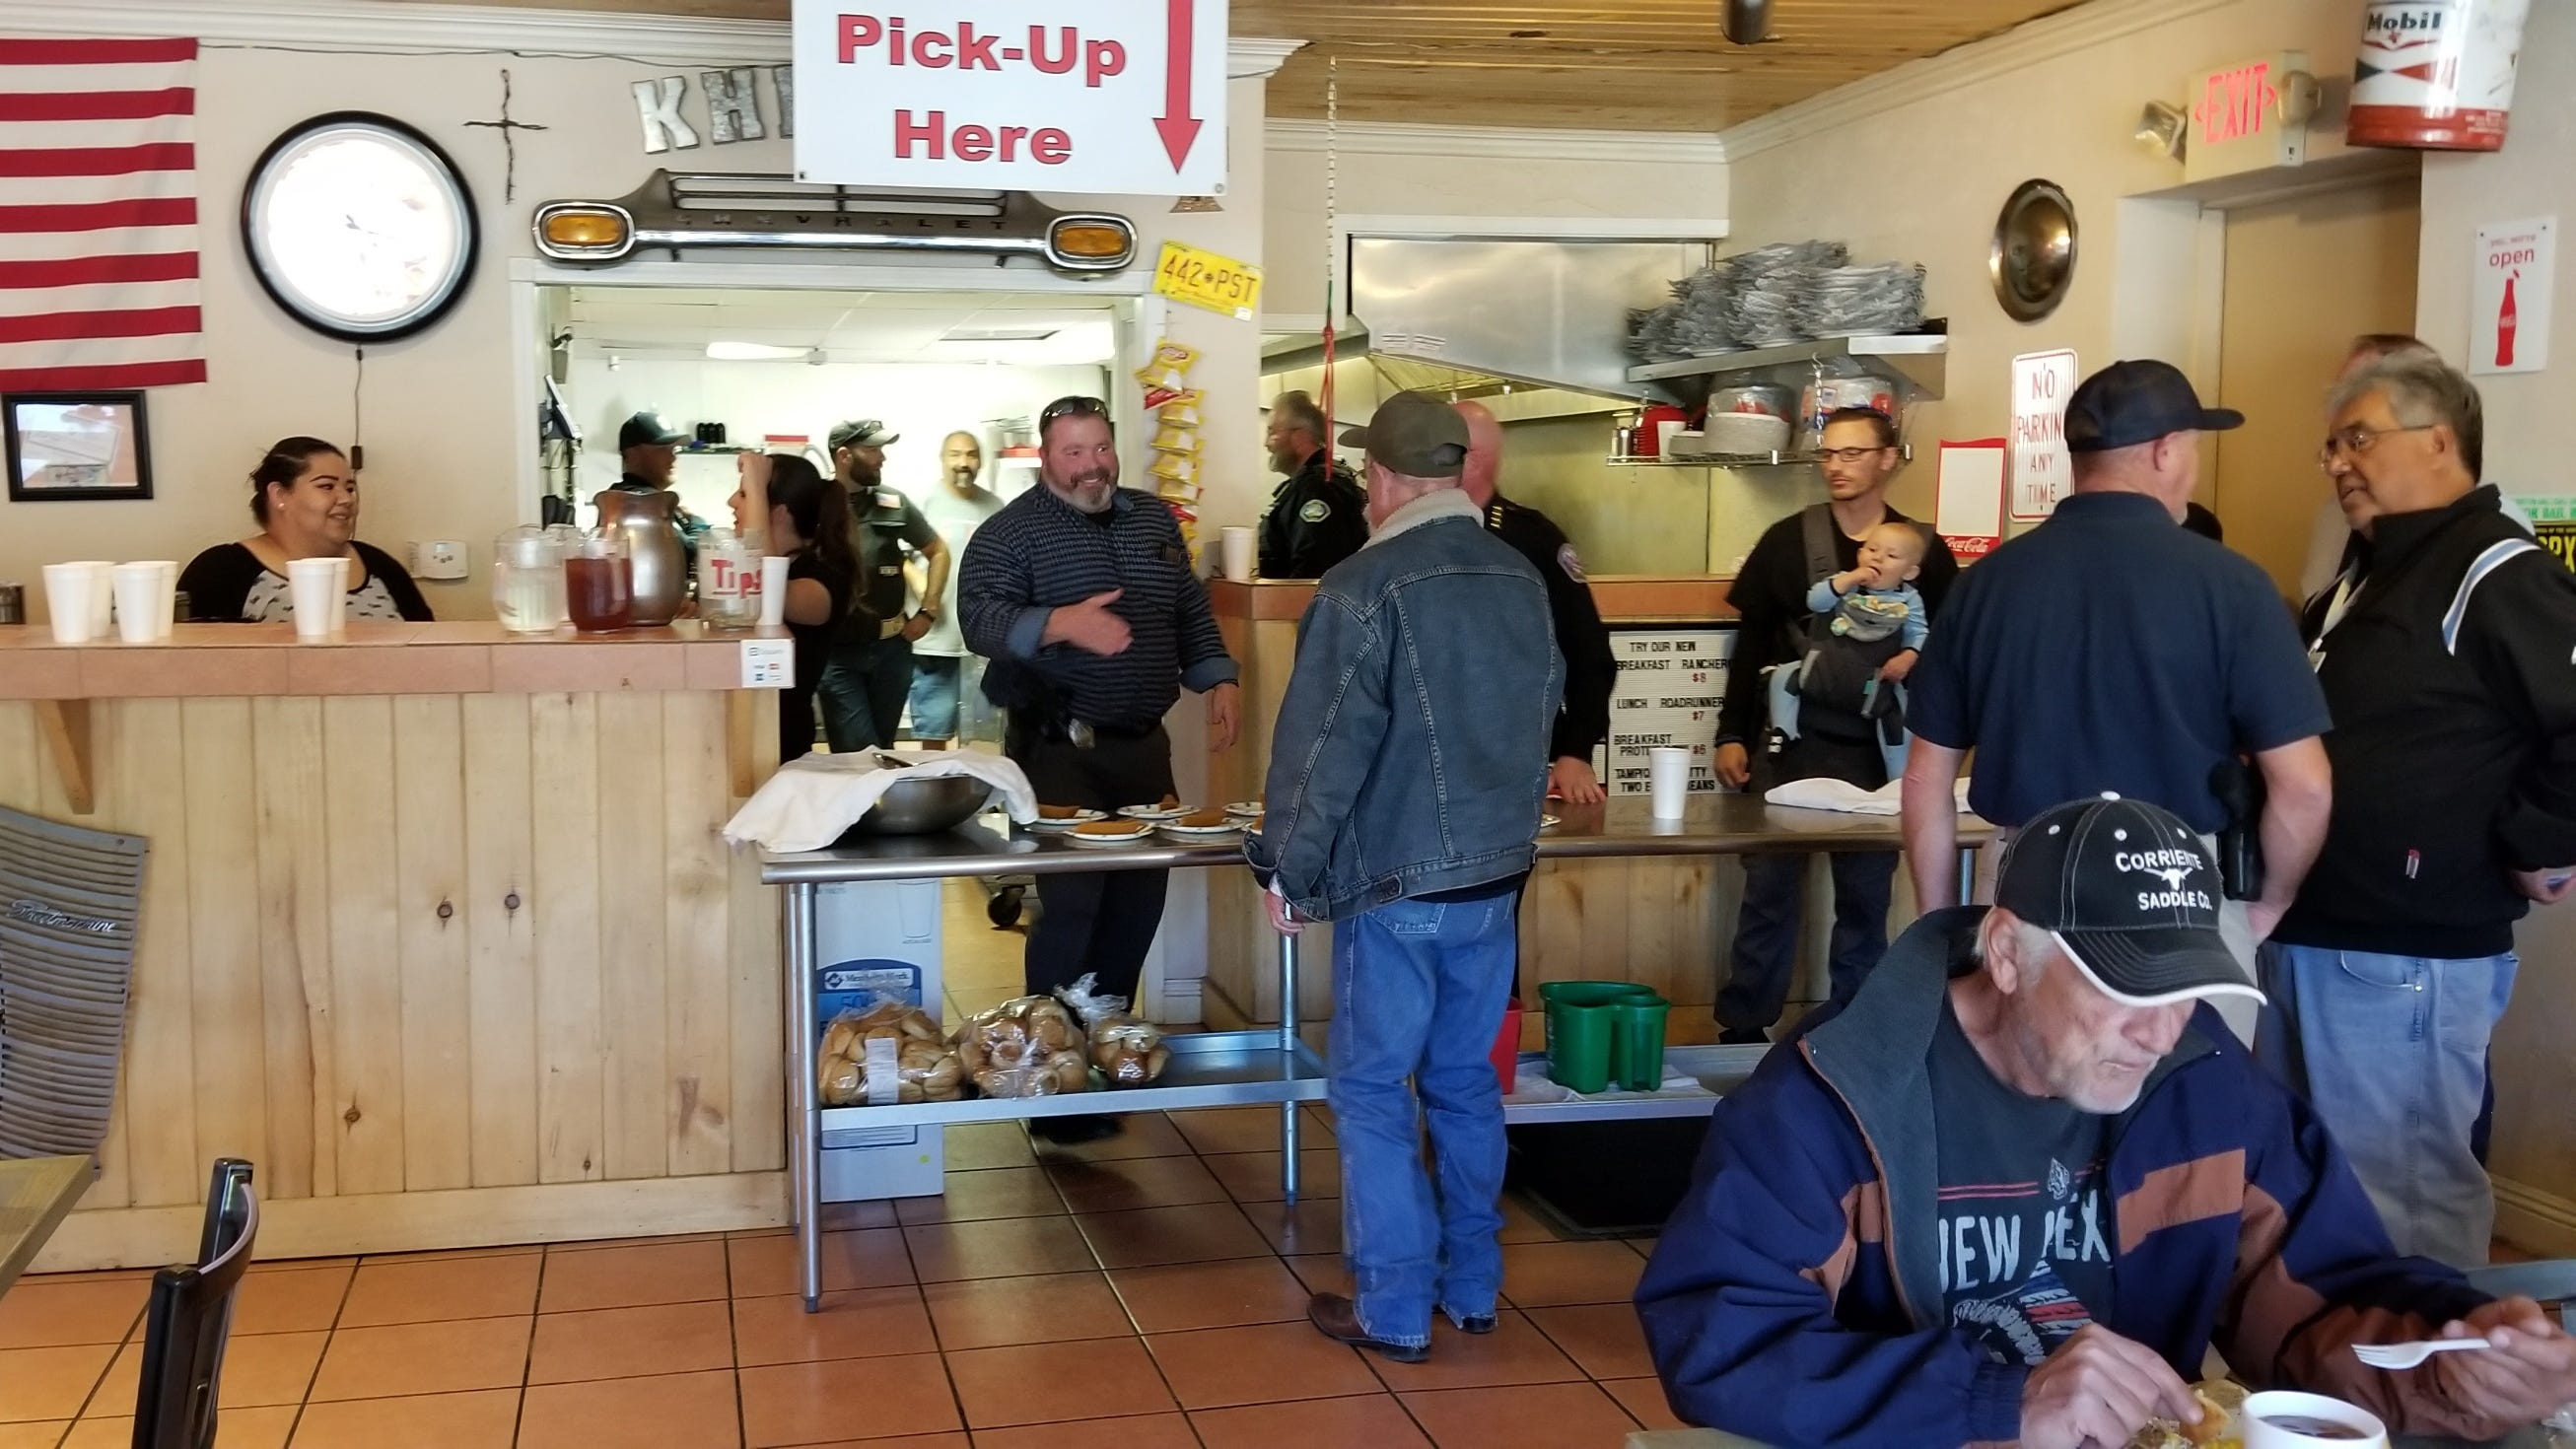 Local law enforcement agencies helped out at the free Thanksgiving meal provided by Bolden and Almador.